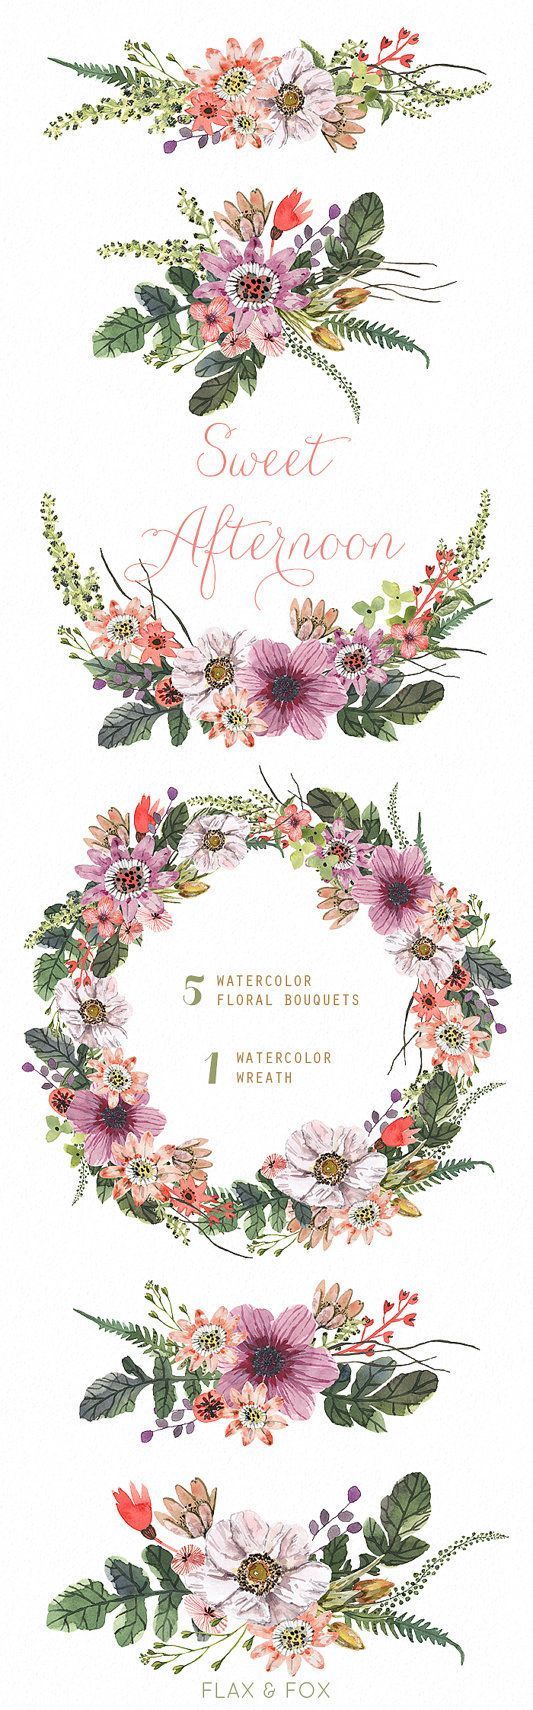 Peony flower isolated on white stock vector 368014568 shutterstock - Sweet Afternoon Watercolor Bouquets Wreath Hand Painted Clipart Floral Wedding Invite Greeting Card Diy Clip Art Flowers